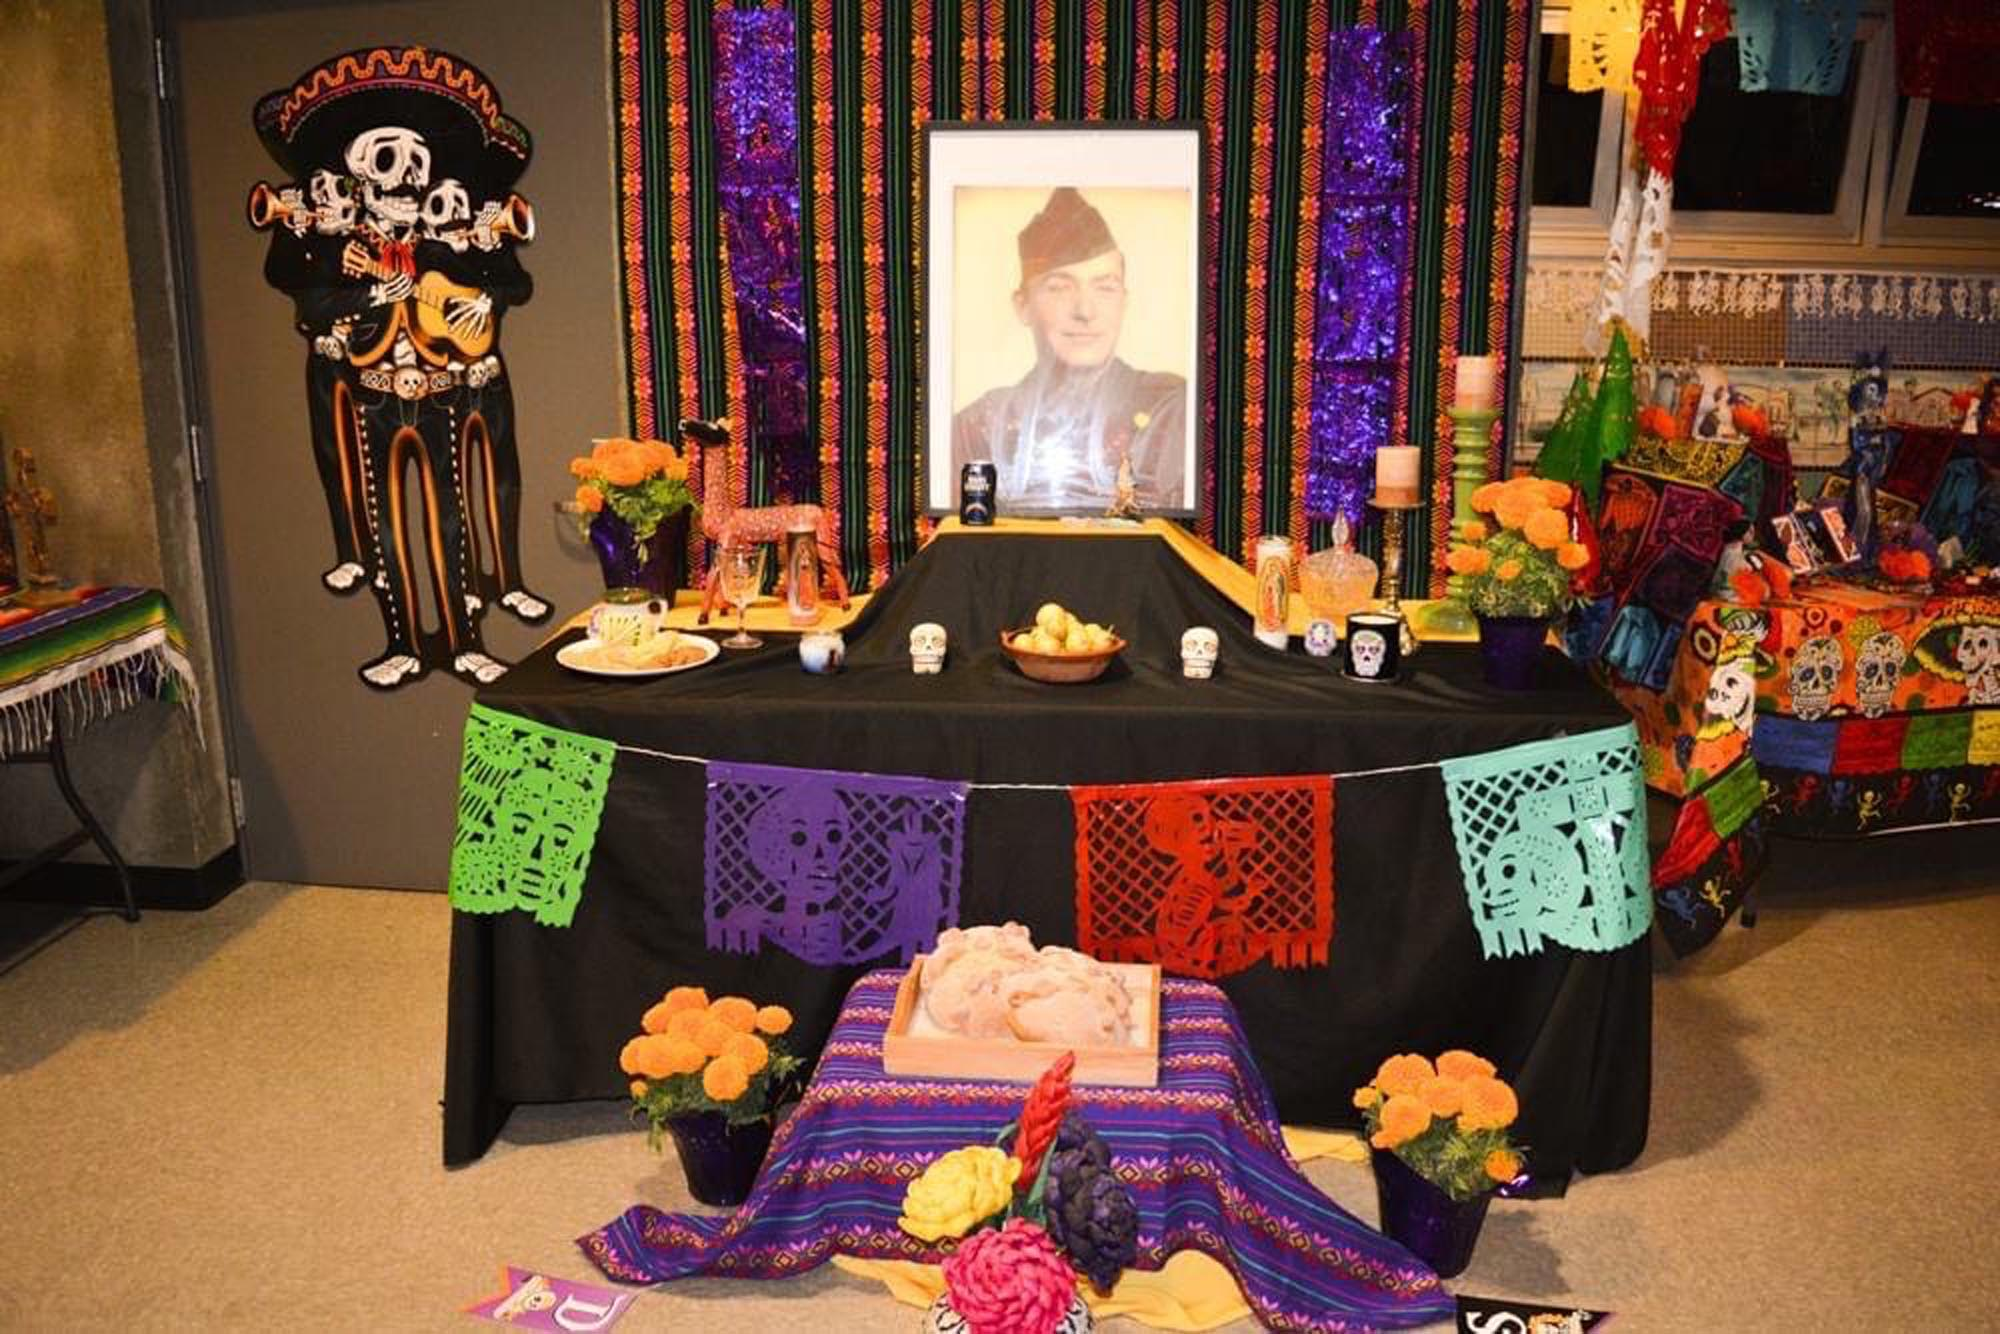 dia de los muertos altar with an old, sepia photo of a man in uniform. the altar has colorful flags and decorations and is indoors